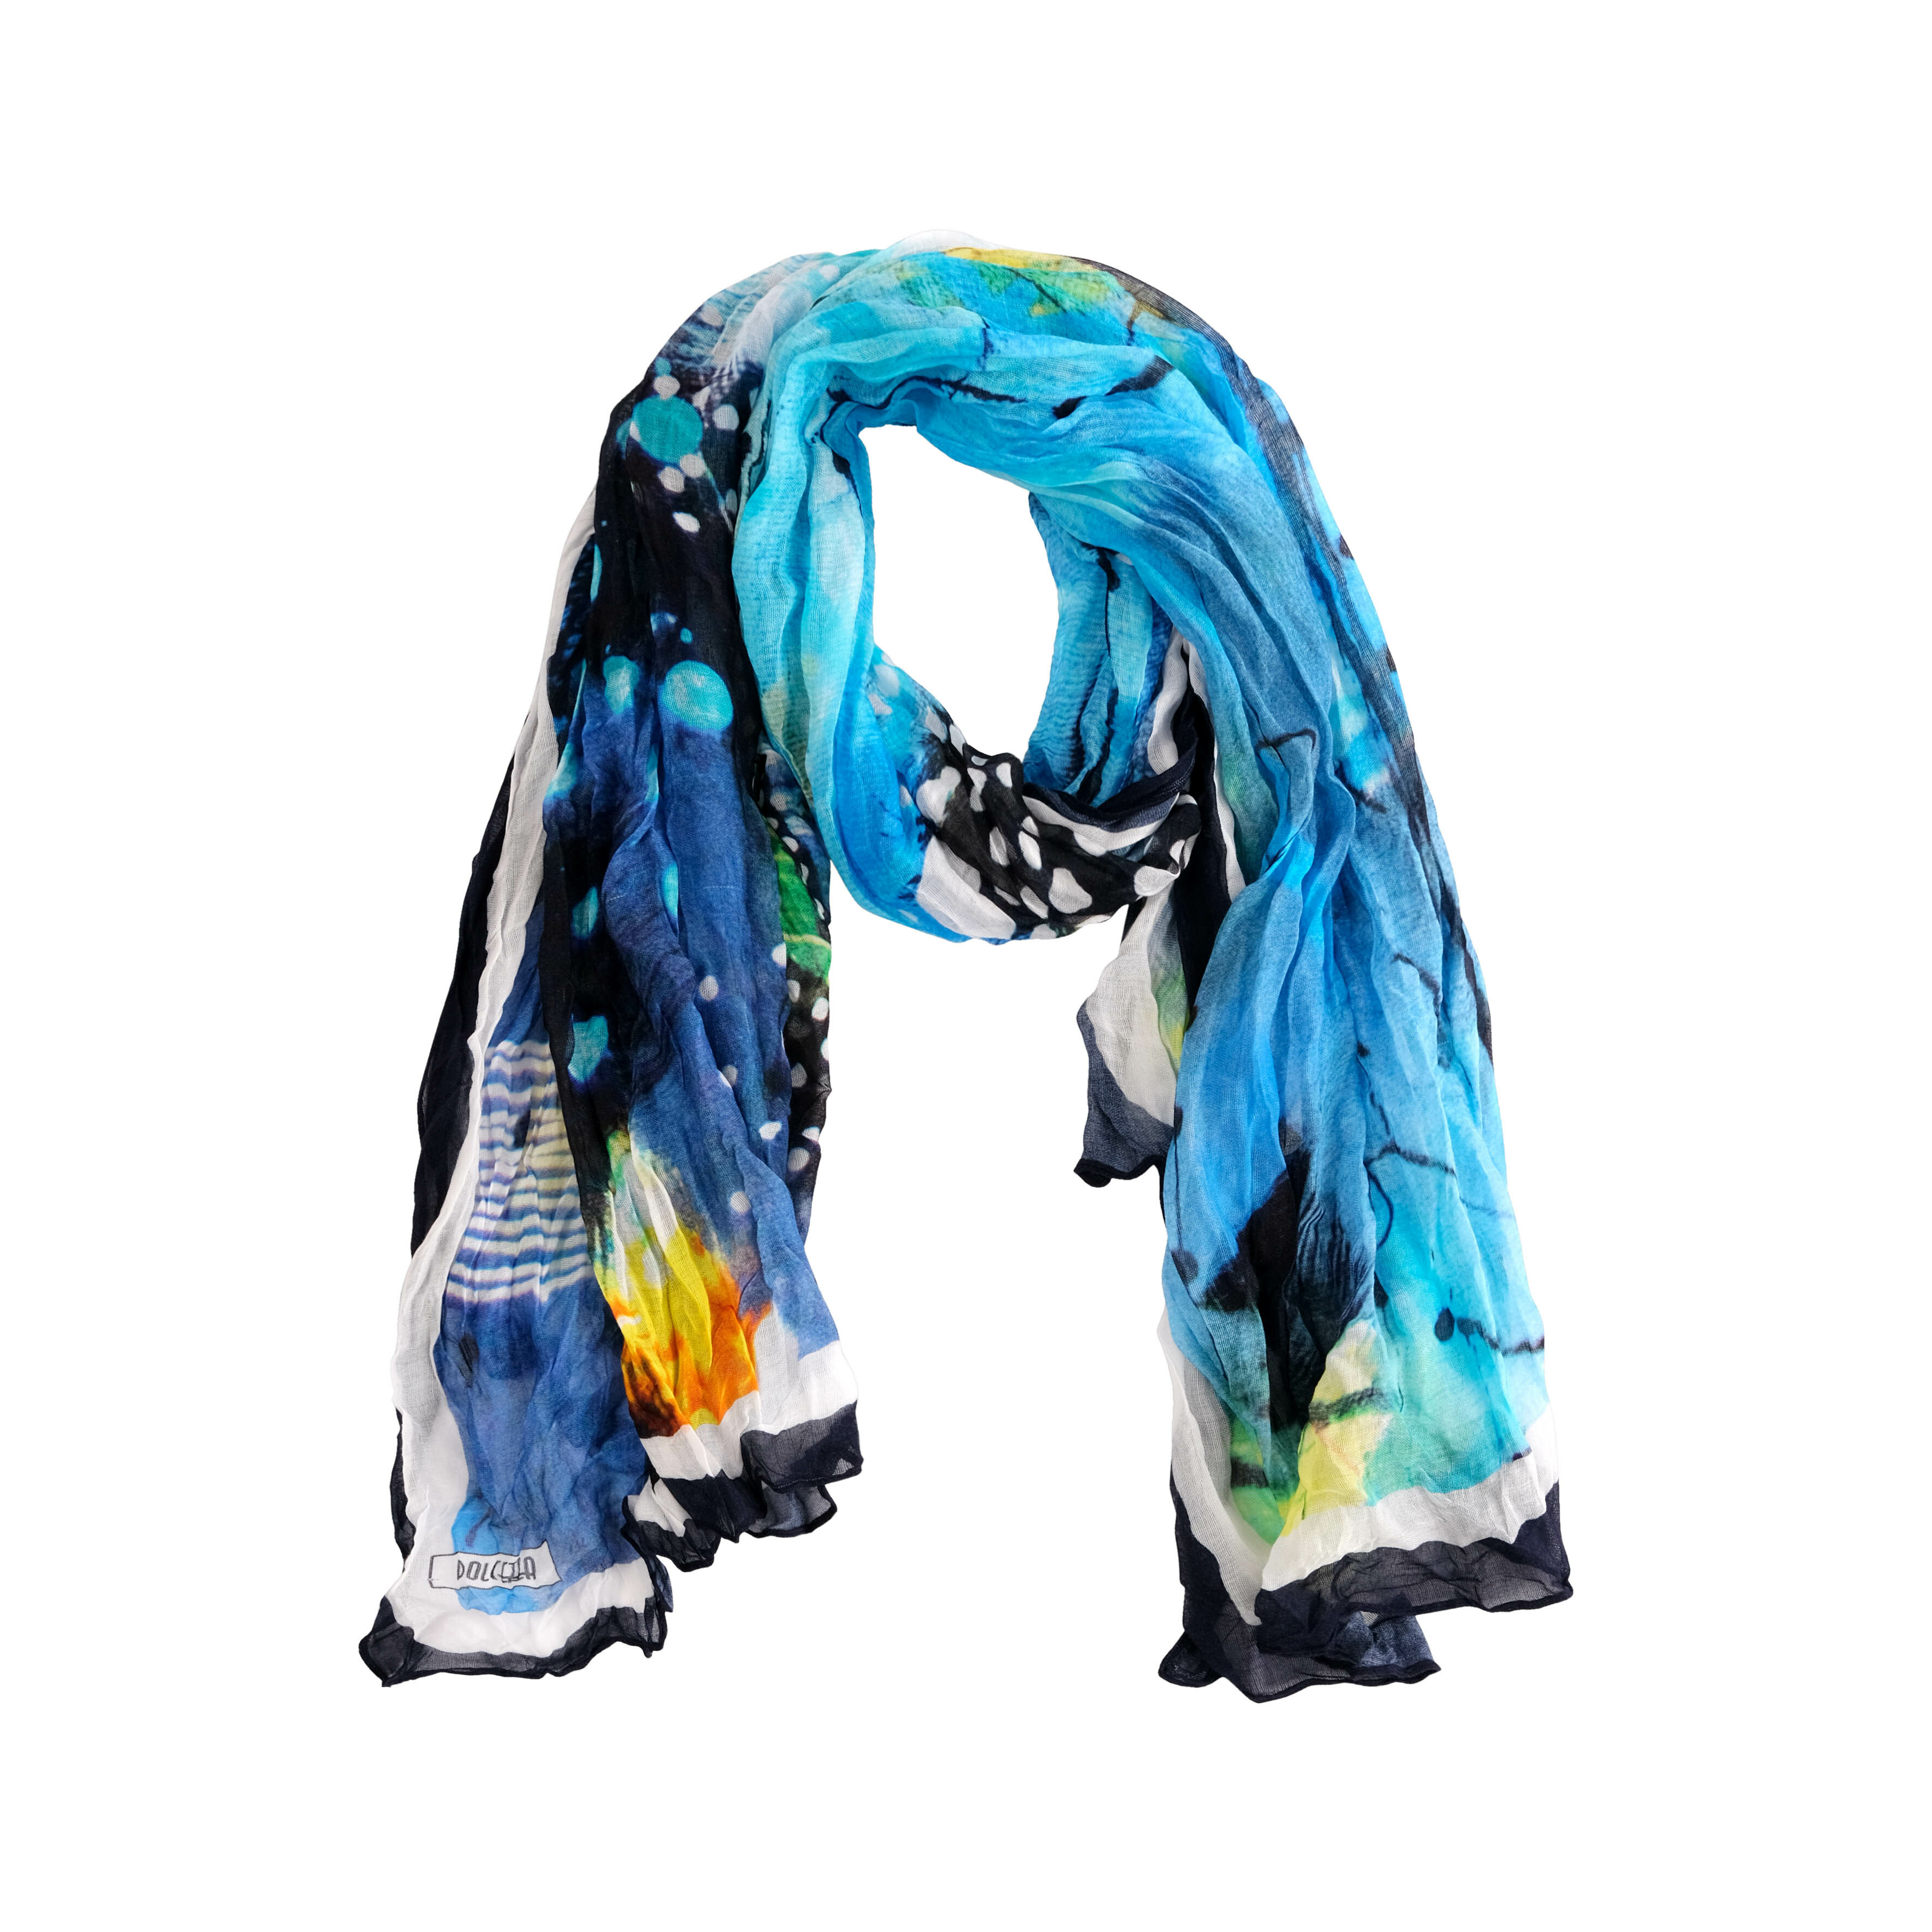 Simply Art Dolcezza: The Love of Blue Happiness Abstract Art Scarf (2 Left!) DOLCEZZA_SIMPLYART_20902